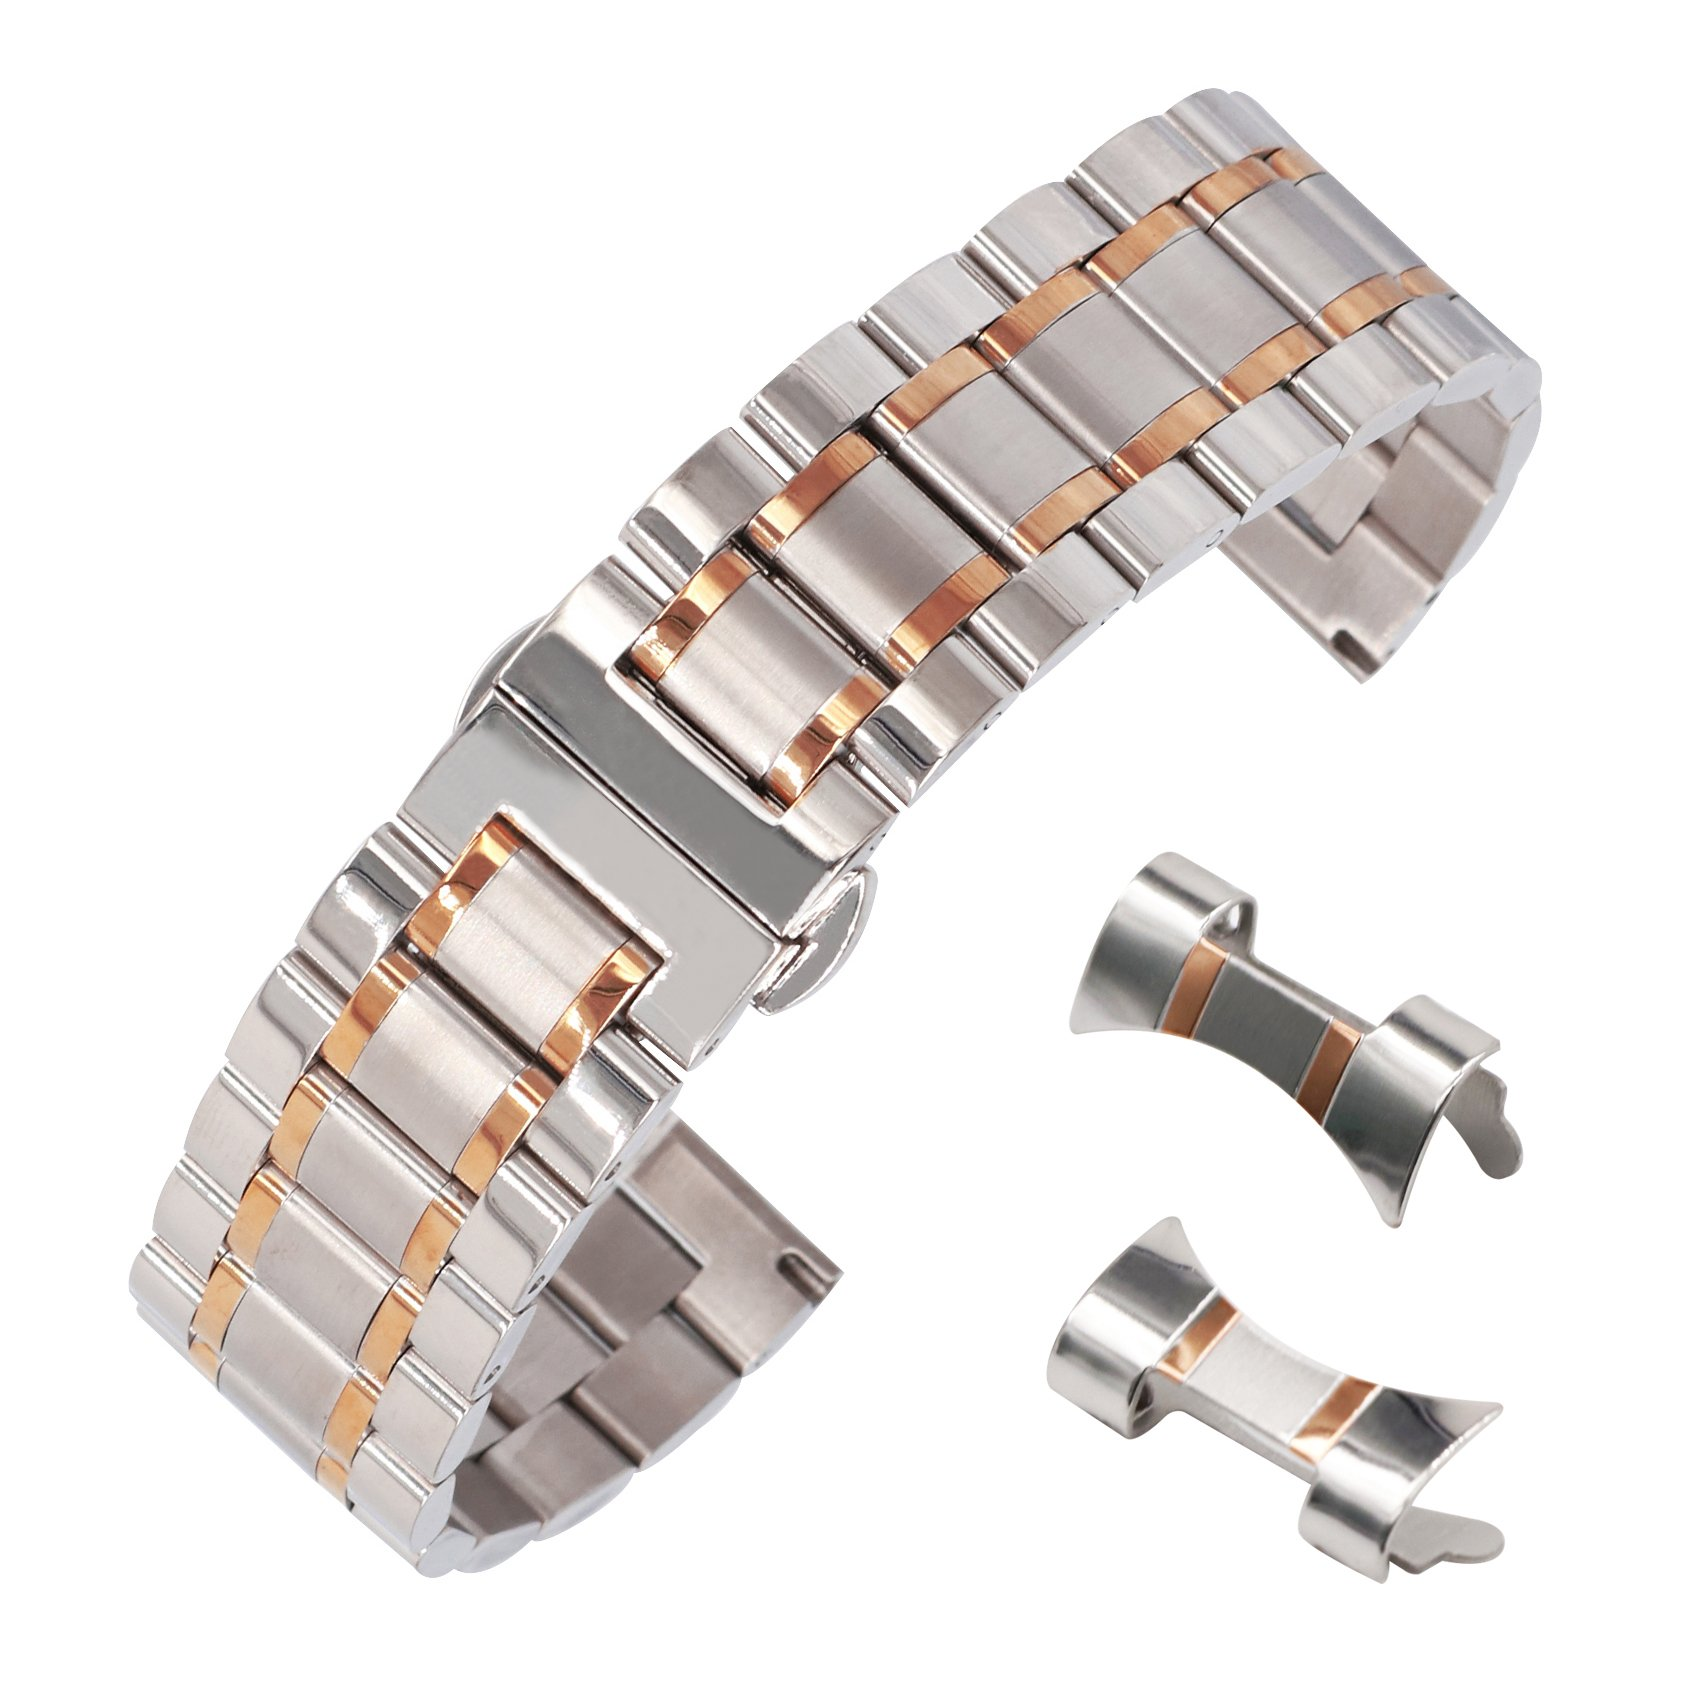 14mm Fantasy Stainless Steel Smart Watch Band Bracelet Metal Deployant Clasp Two Tone Silver&Rose Gold